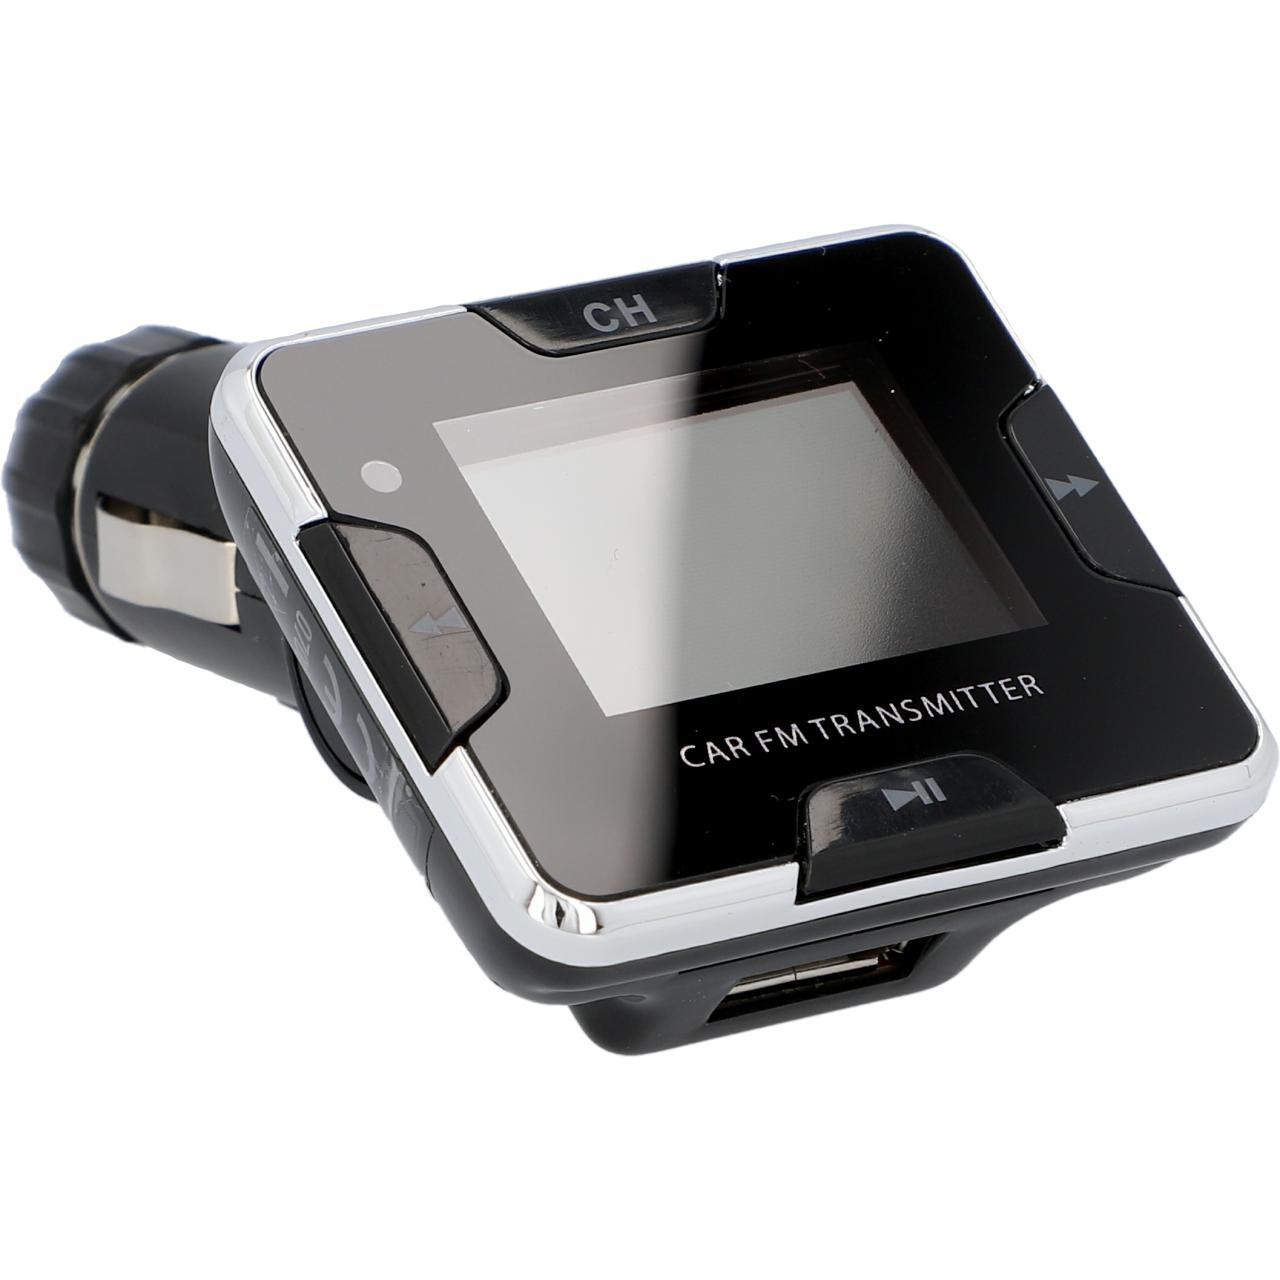 FM transmitter CARTREND 10466 expert knowledge